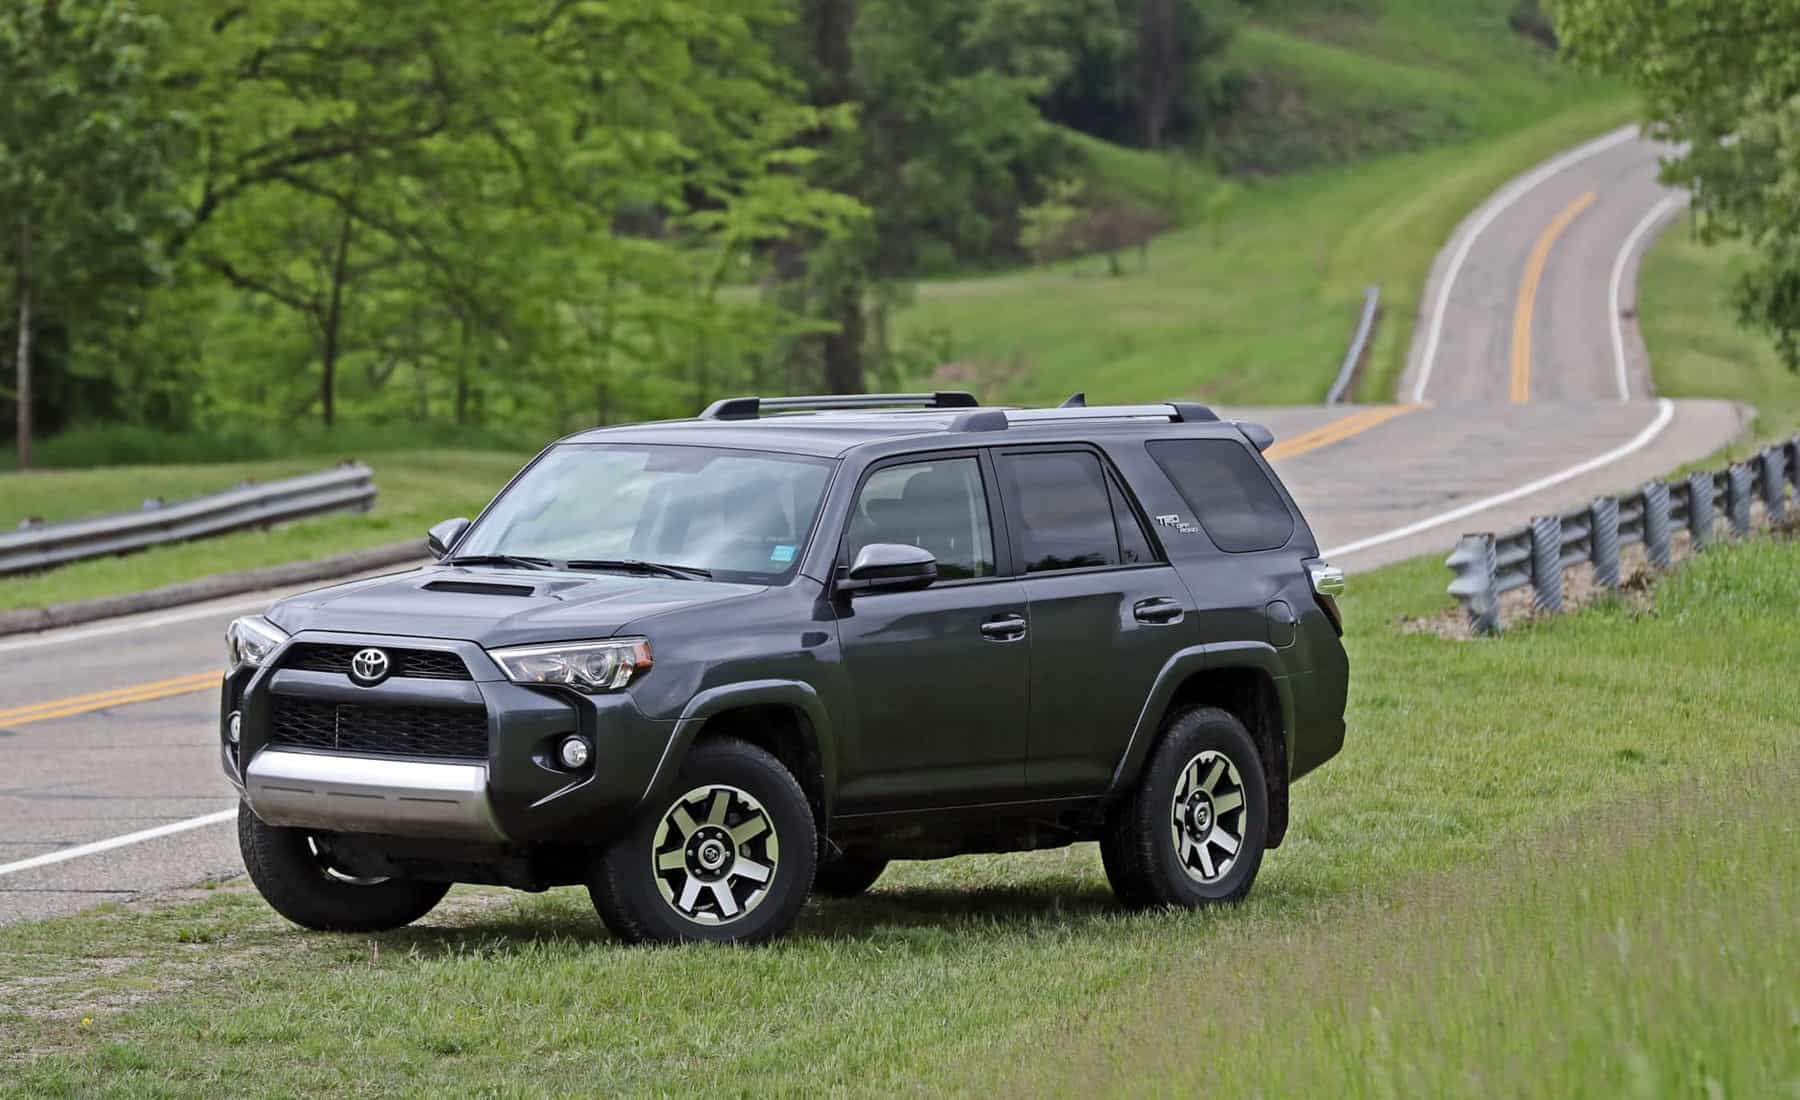 2017 Toyota 4Runner TRD Off Road 4WD Exterior (Photo 2 of 40)